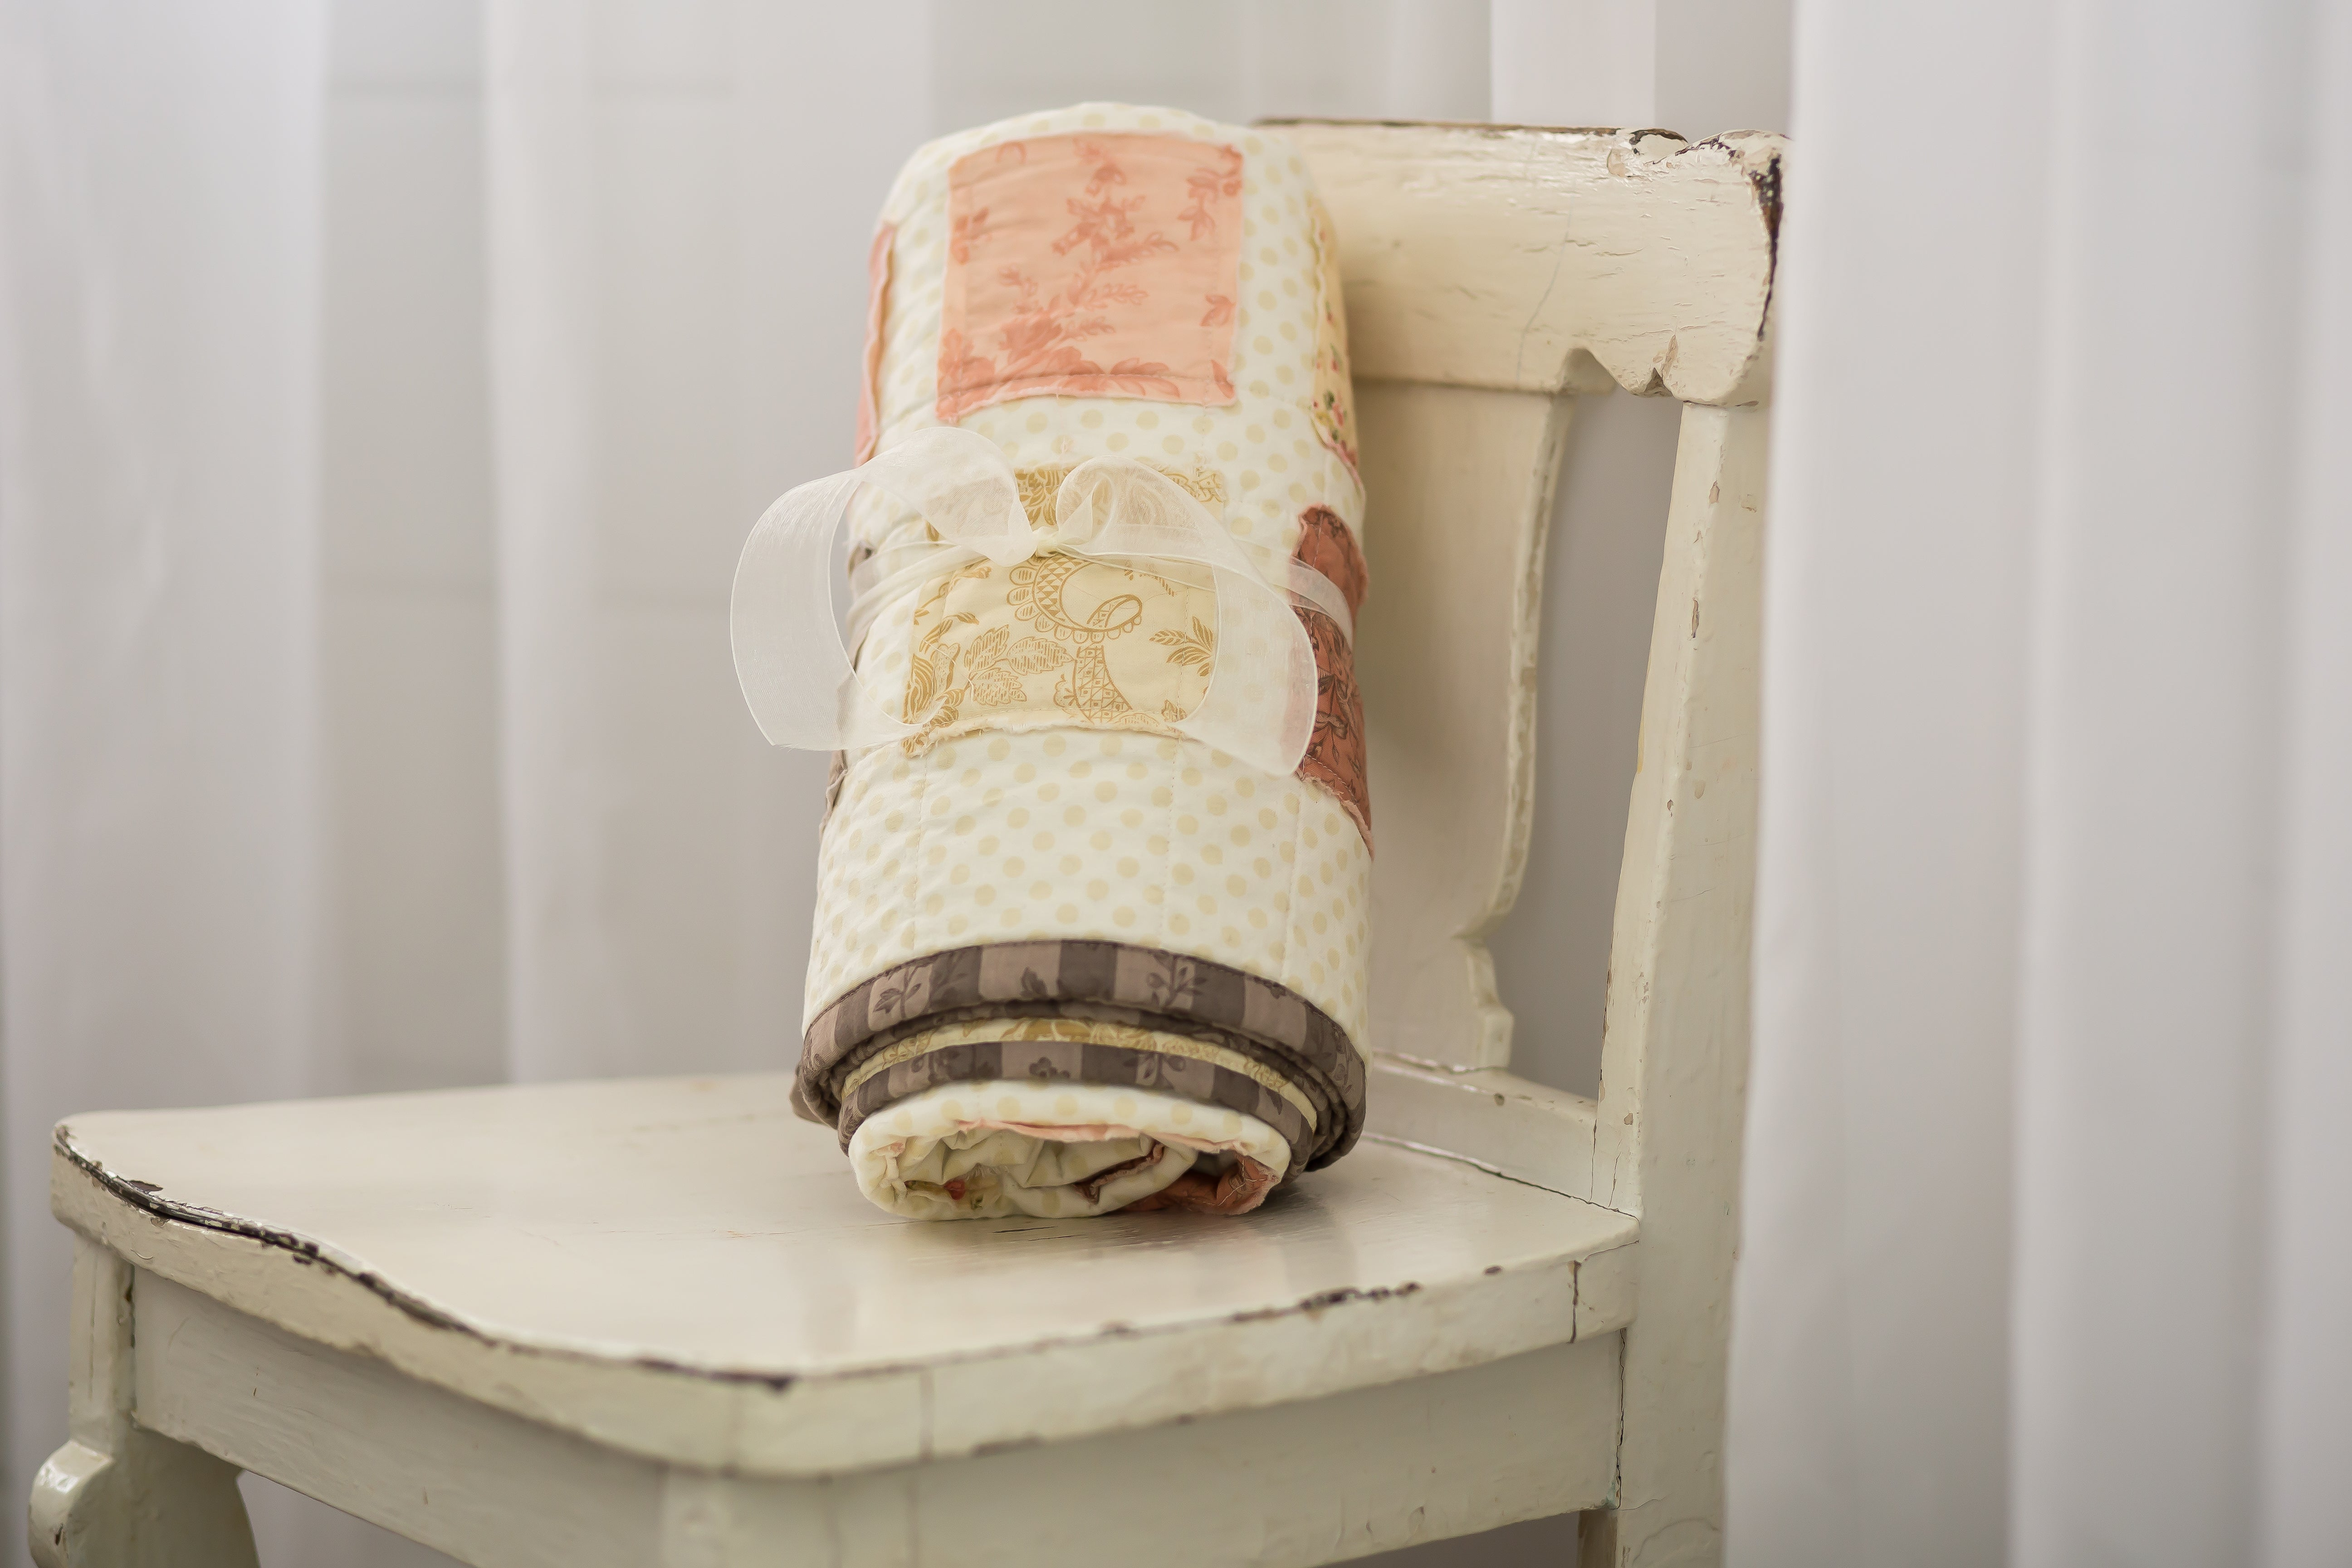 newborn-quilt-on-shabby-chic-chair-classic-baby-room-decor